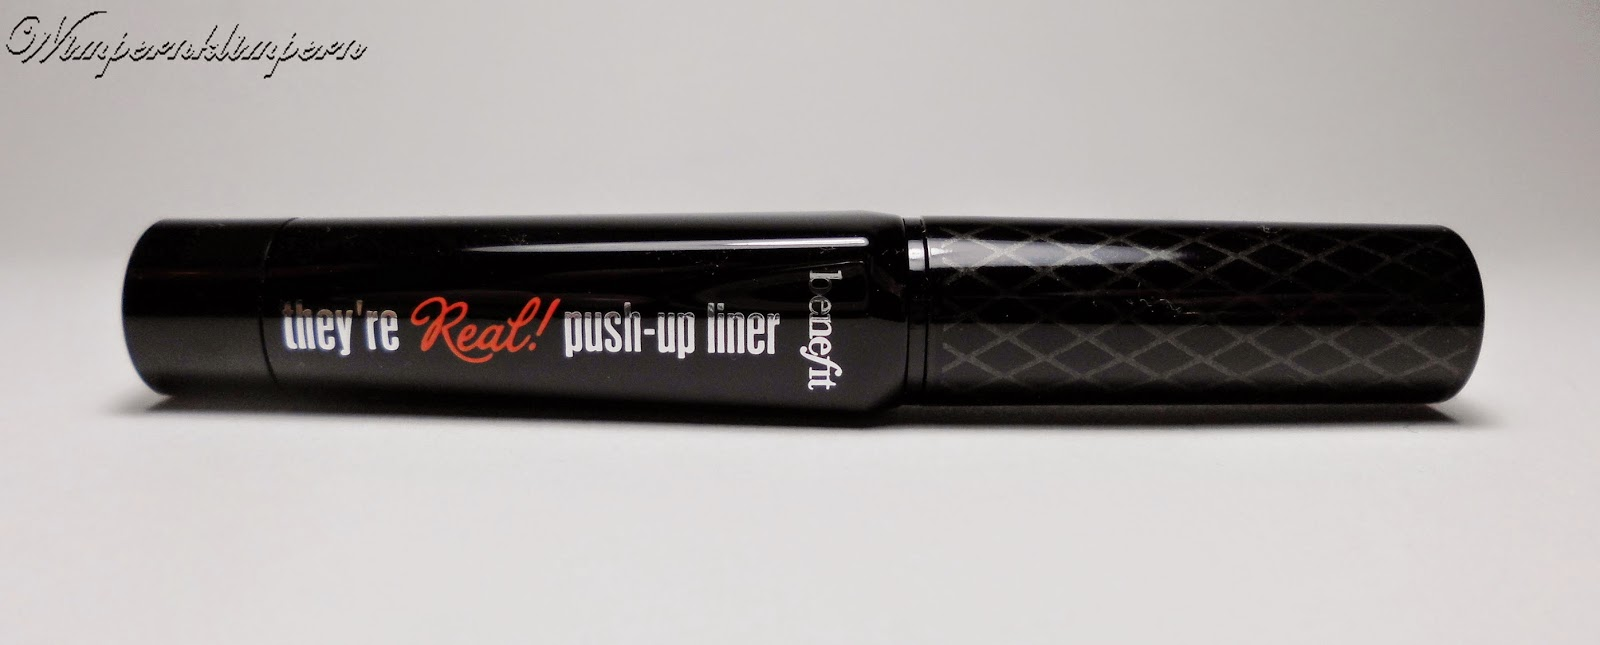 Benefit Theyre real push-up liner